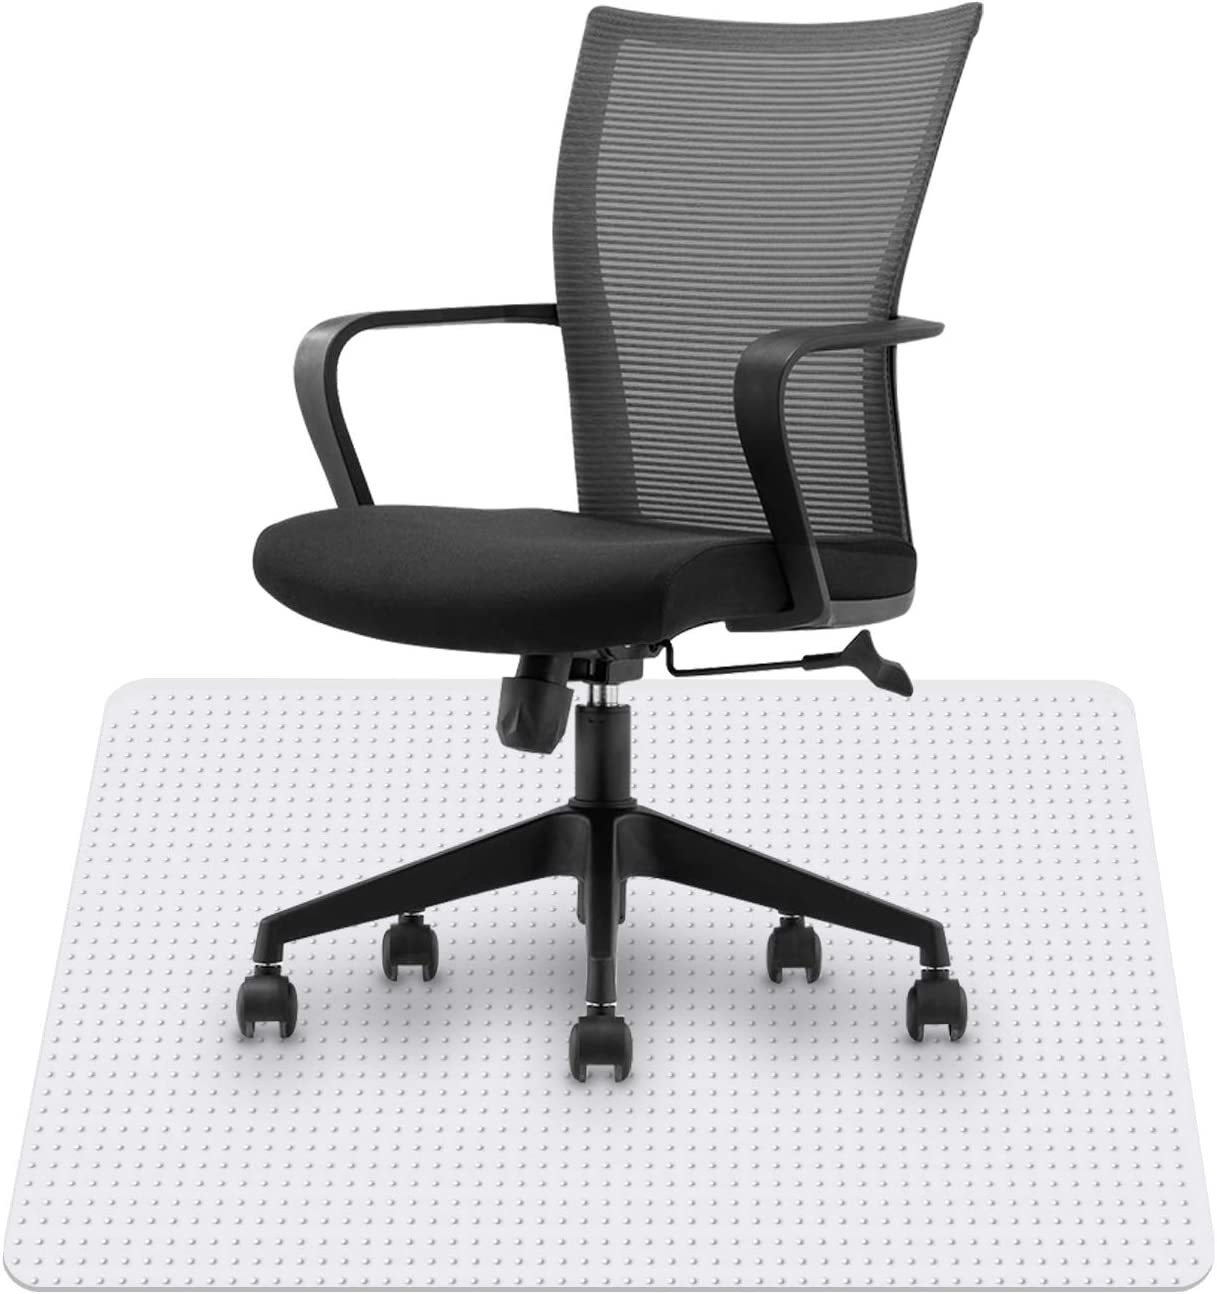 HST Chair Mat for Carpeted Floors, Good for Desks, Office and Home, Protects Floors,36 X 48 with Glide Studded,Suitable for use on Low-Pile Carpets up to 1/4-inch Thick.